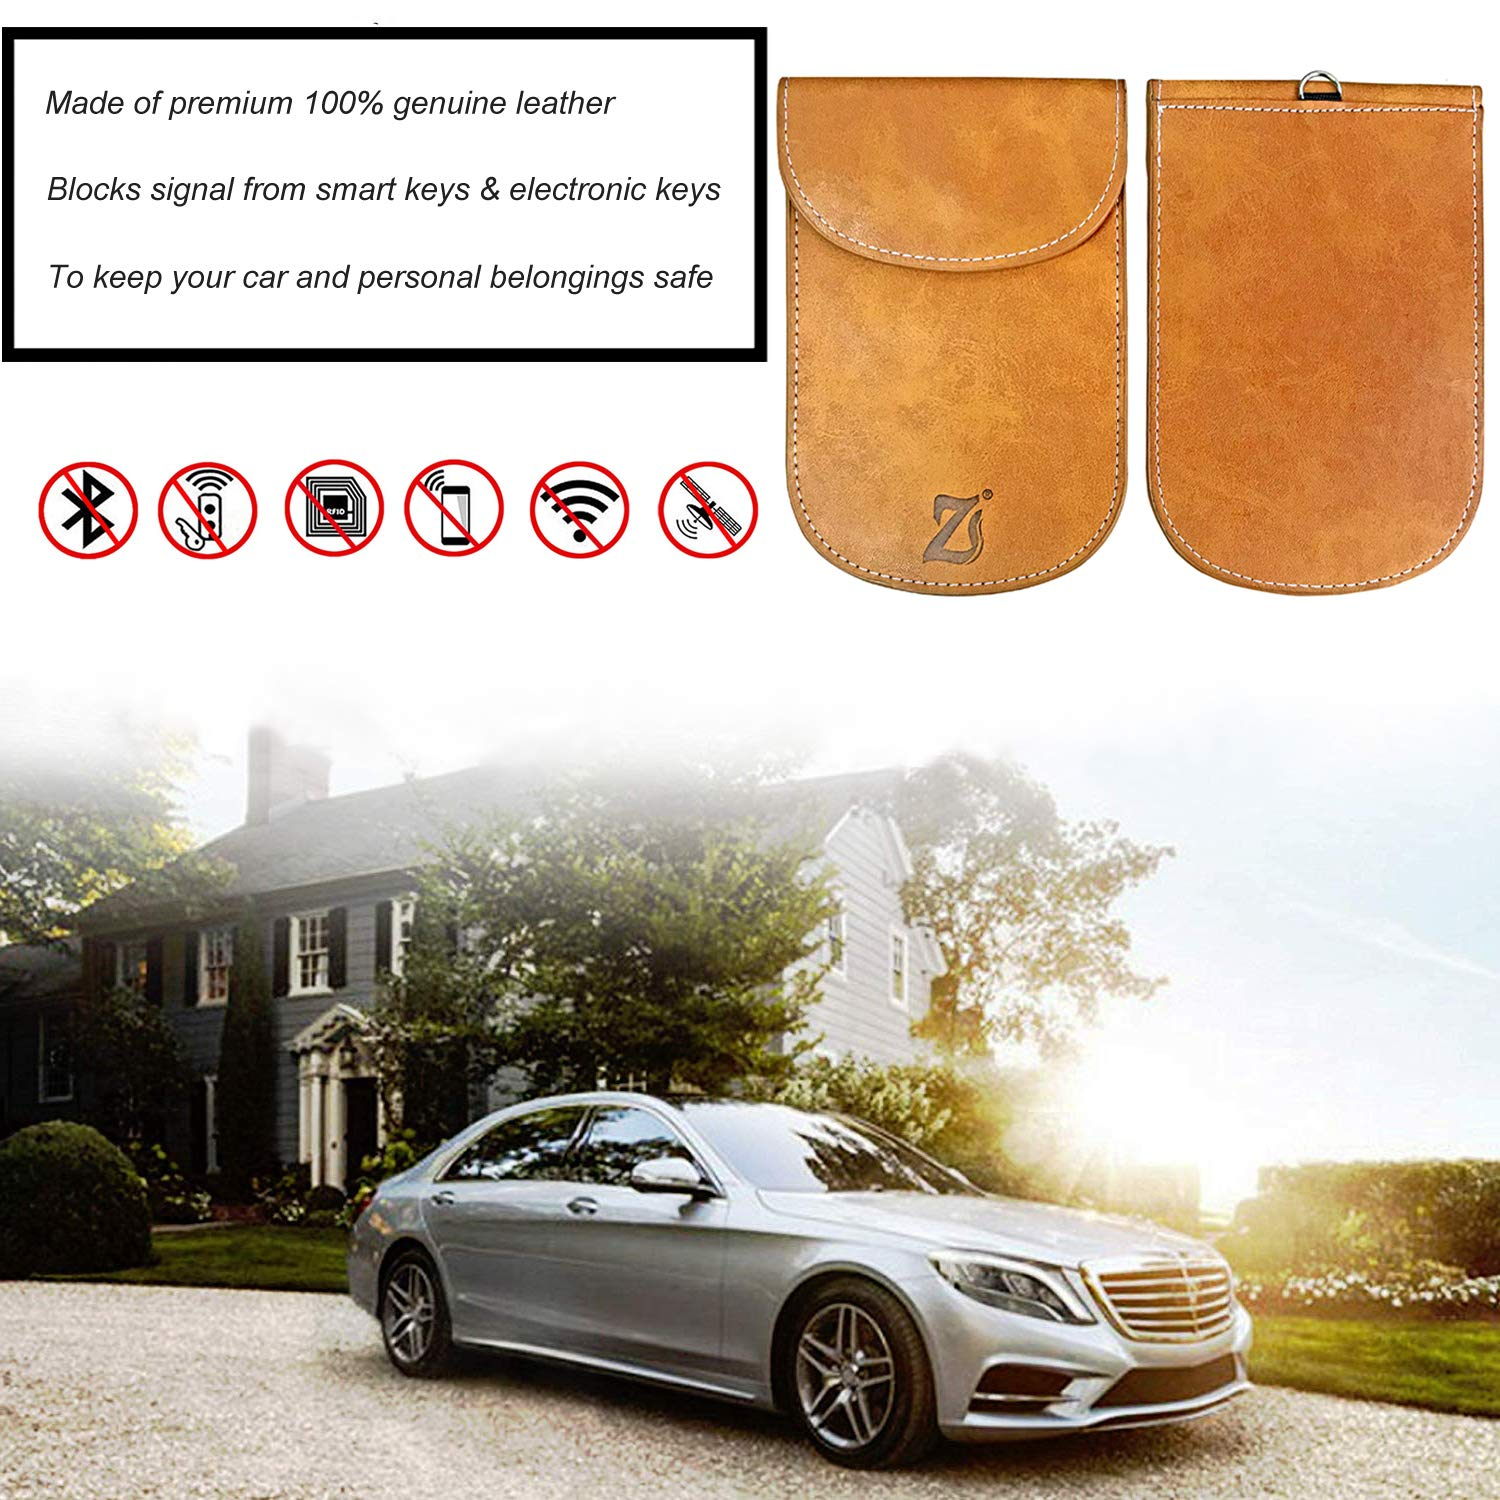 Leather Upgraded Faraday Bag for Key Fob Car Key Protector Signal Blocker Case Keyless Entry Fob Guard Anti-Radiation Pouch RFID Signal Blocking Anti-Hacking Case Blocker Anti-Theft Pouch